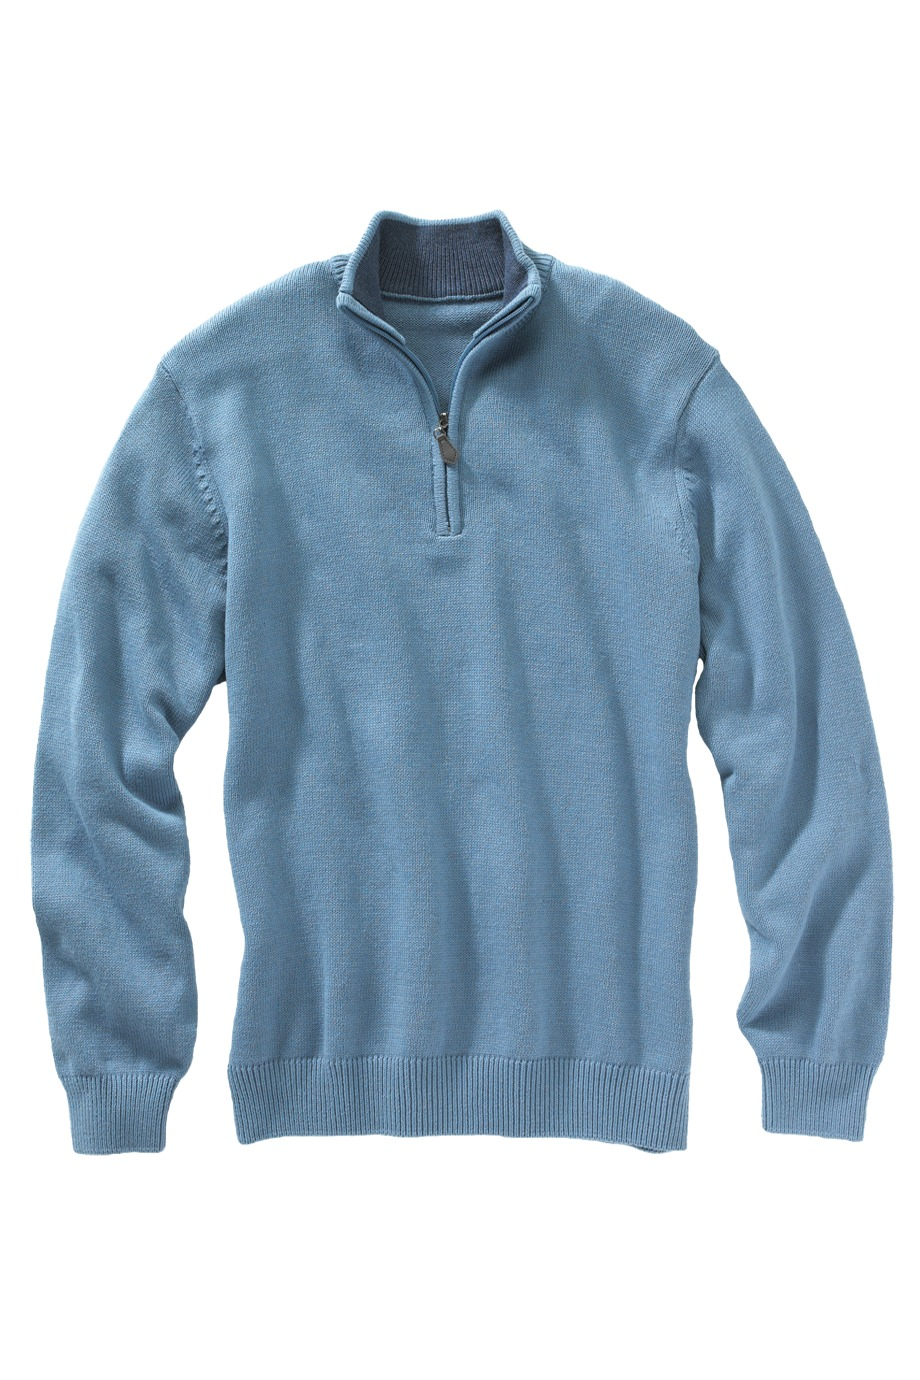 Edwards Garment 712 - Quarter Zip Sweater